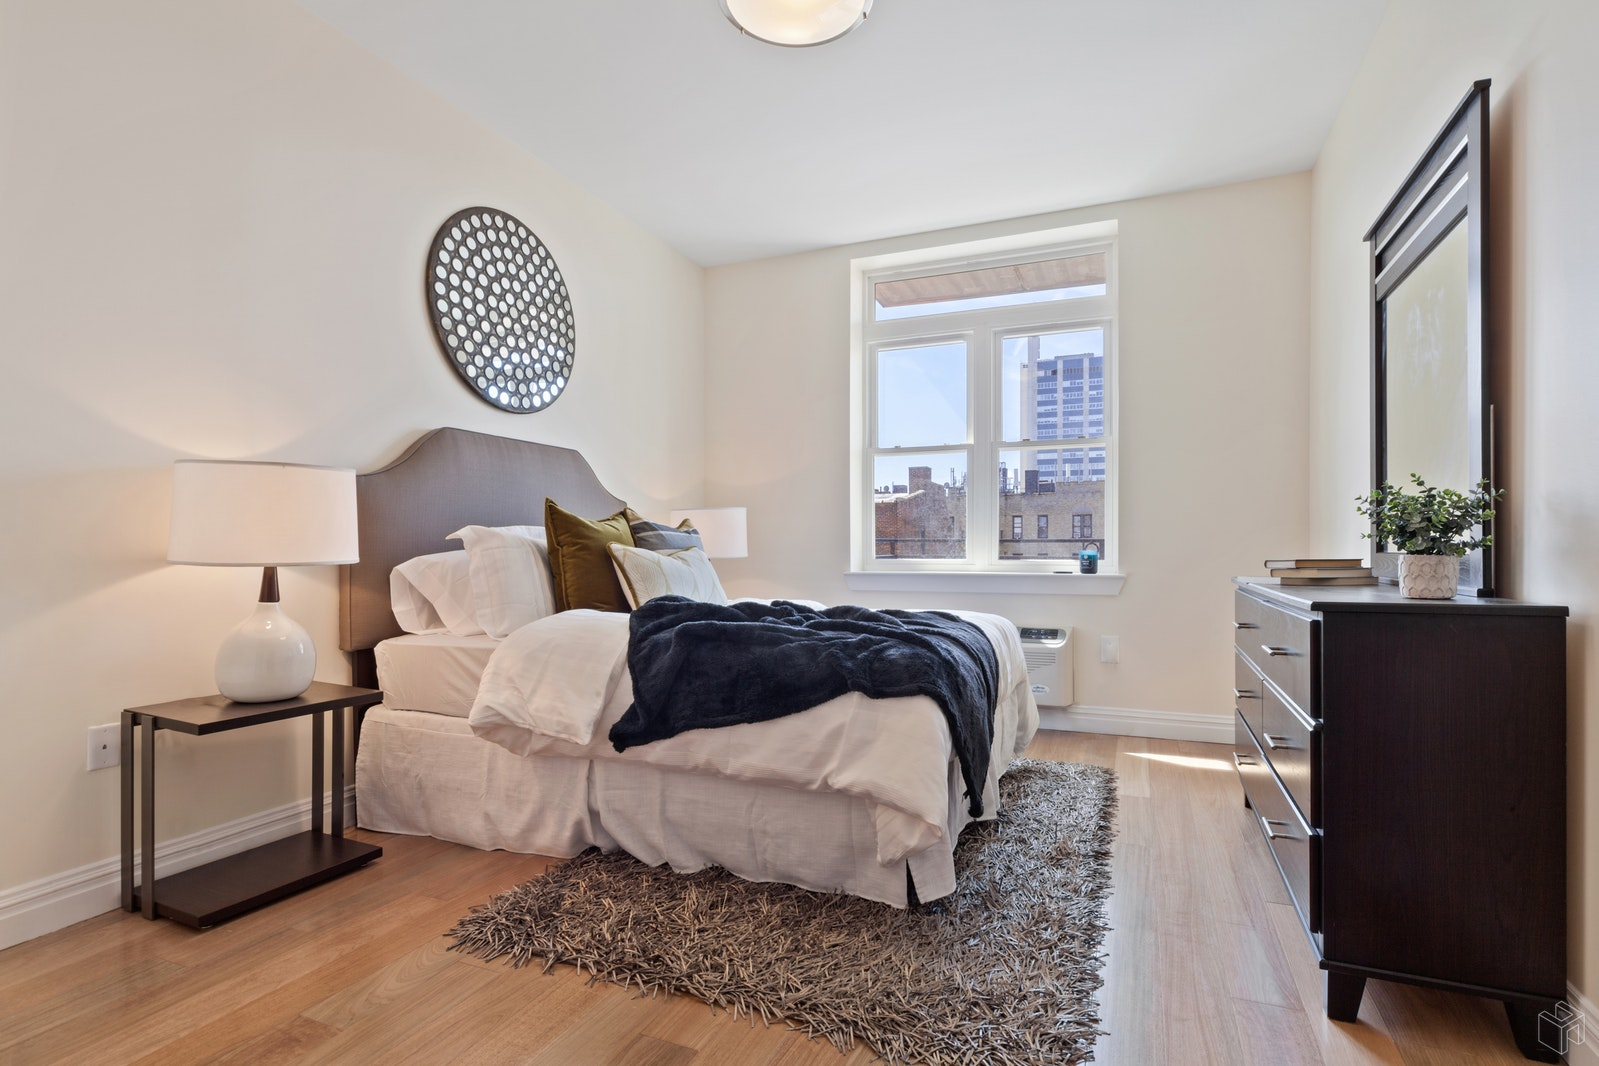 70 WEST 139TH STREET 3B, Central Harlem, $949,000, Web #: 18081743